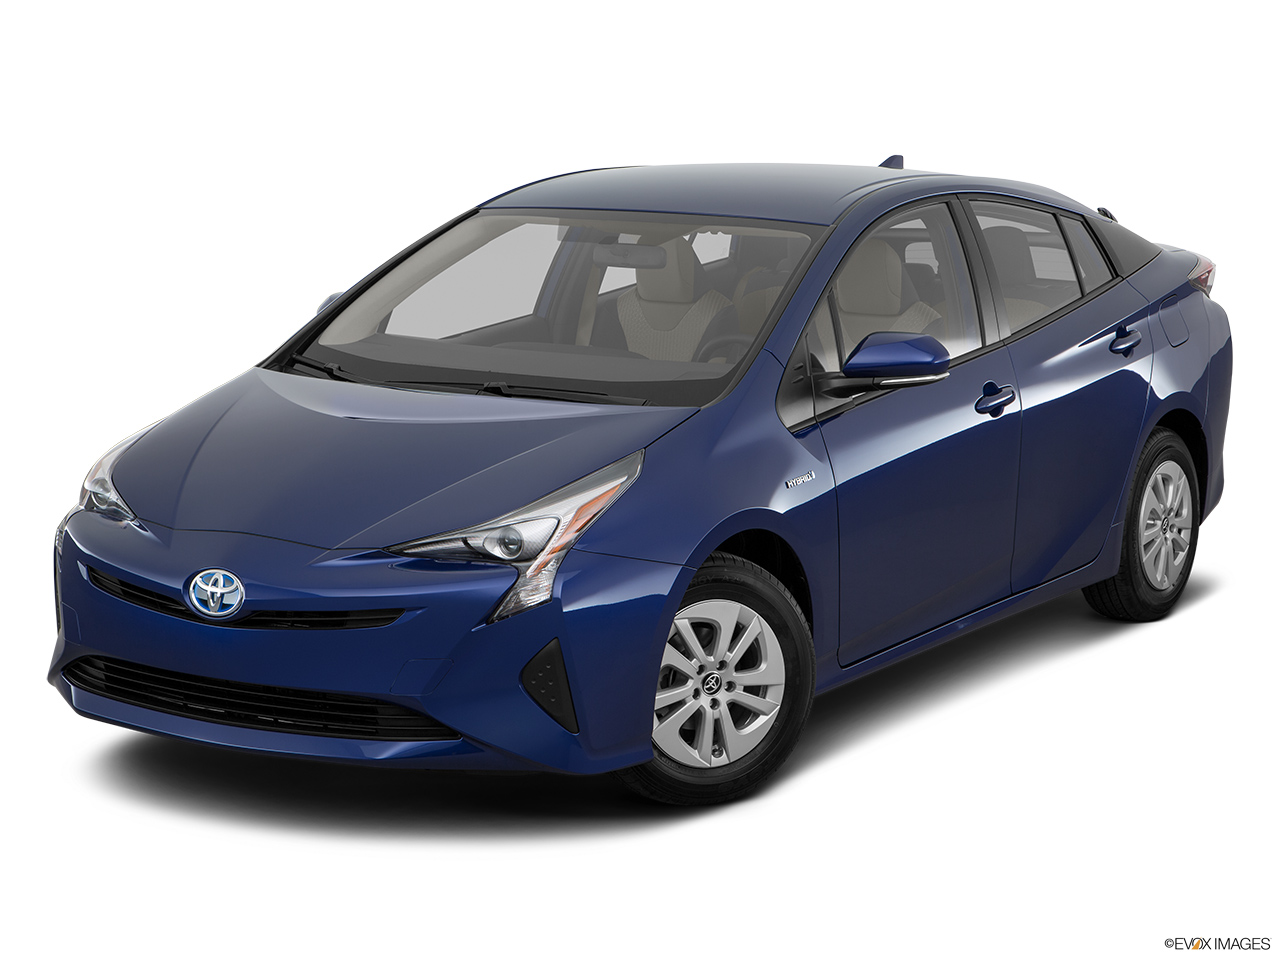 2016 toyota prius prices in kuwait gulf specs reviews. Black Bedroom Furniture Sets. Home Design Ideas